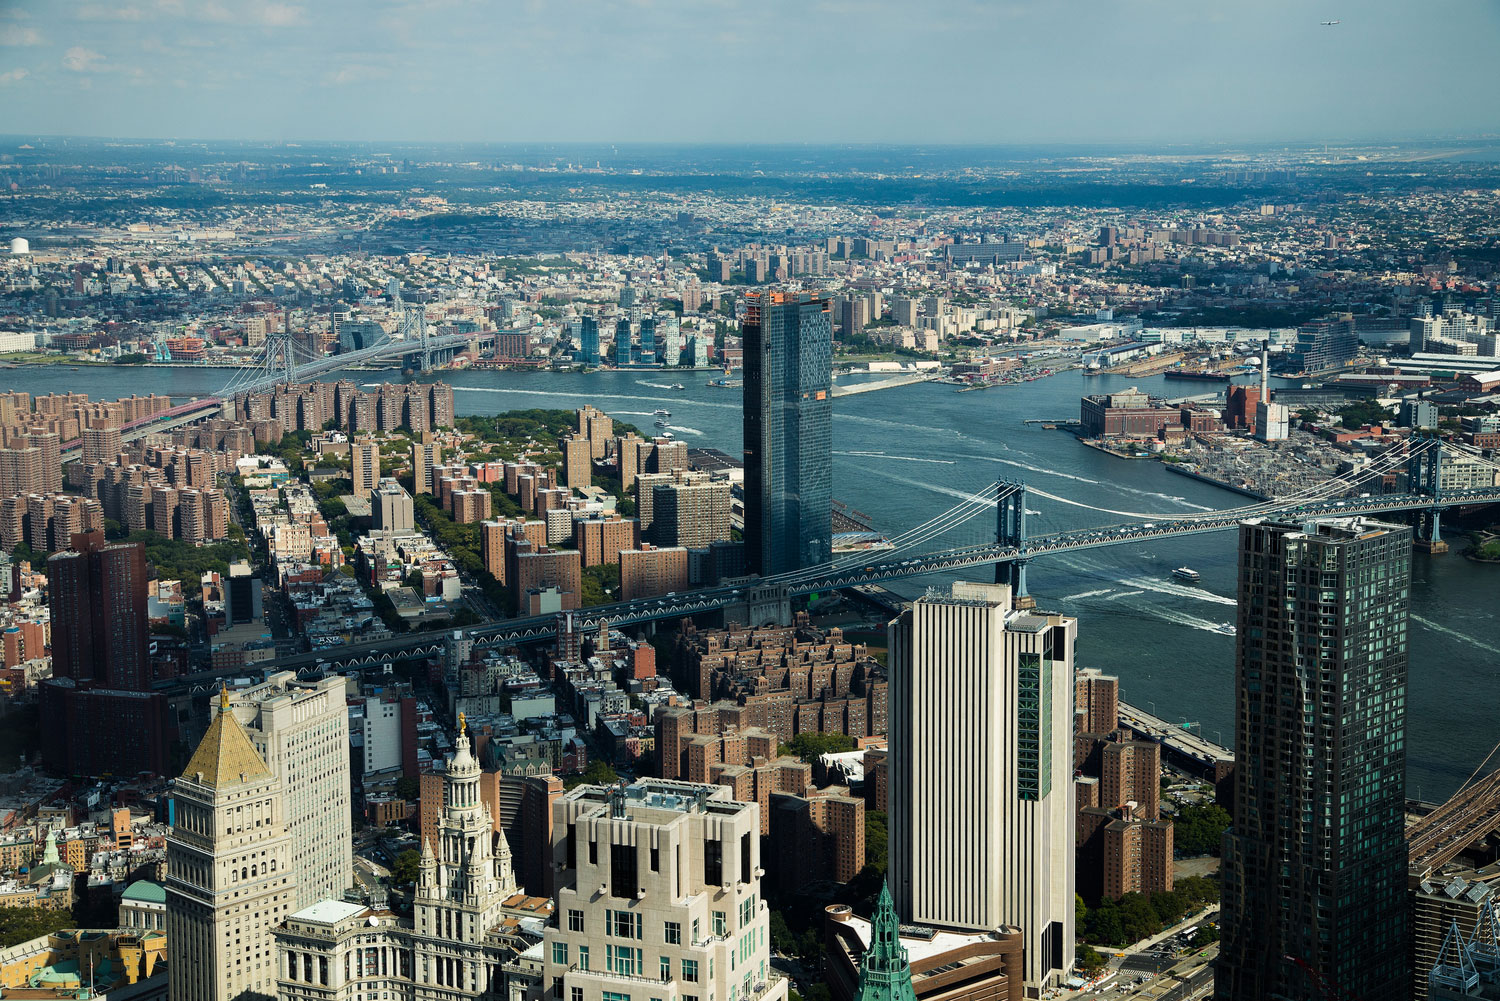 The preliminary climate resiliency guidelines were tested across each of the city's five boroughs, including Brooklyn, Manhattan, Queens, Staten Island, and the Bronx. Photo courtesy of Dewberry.